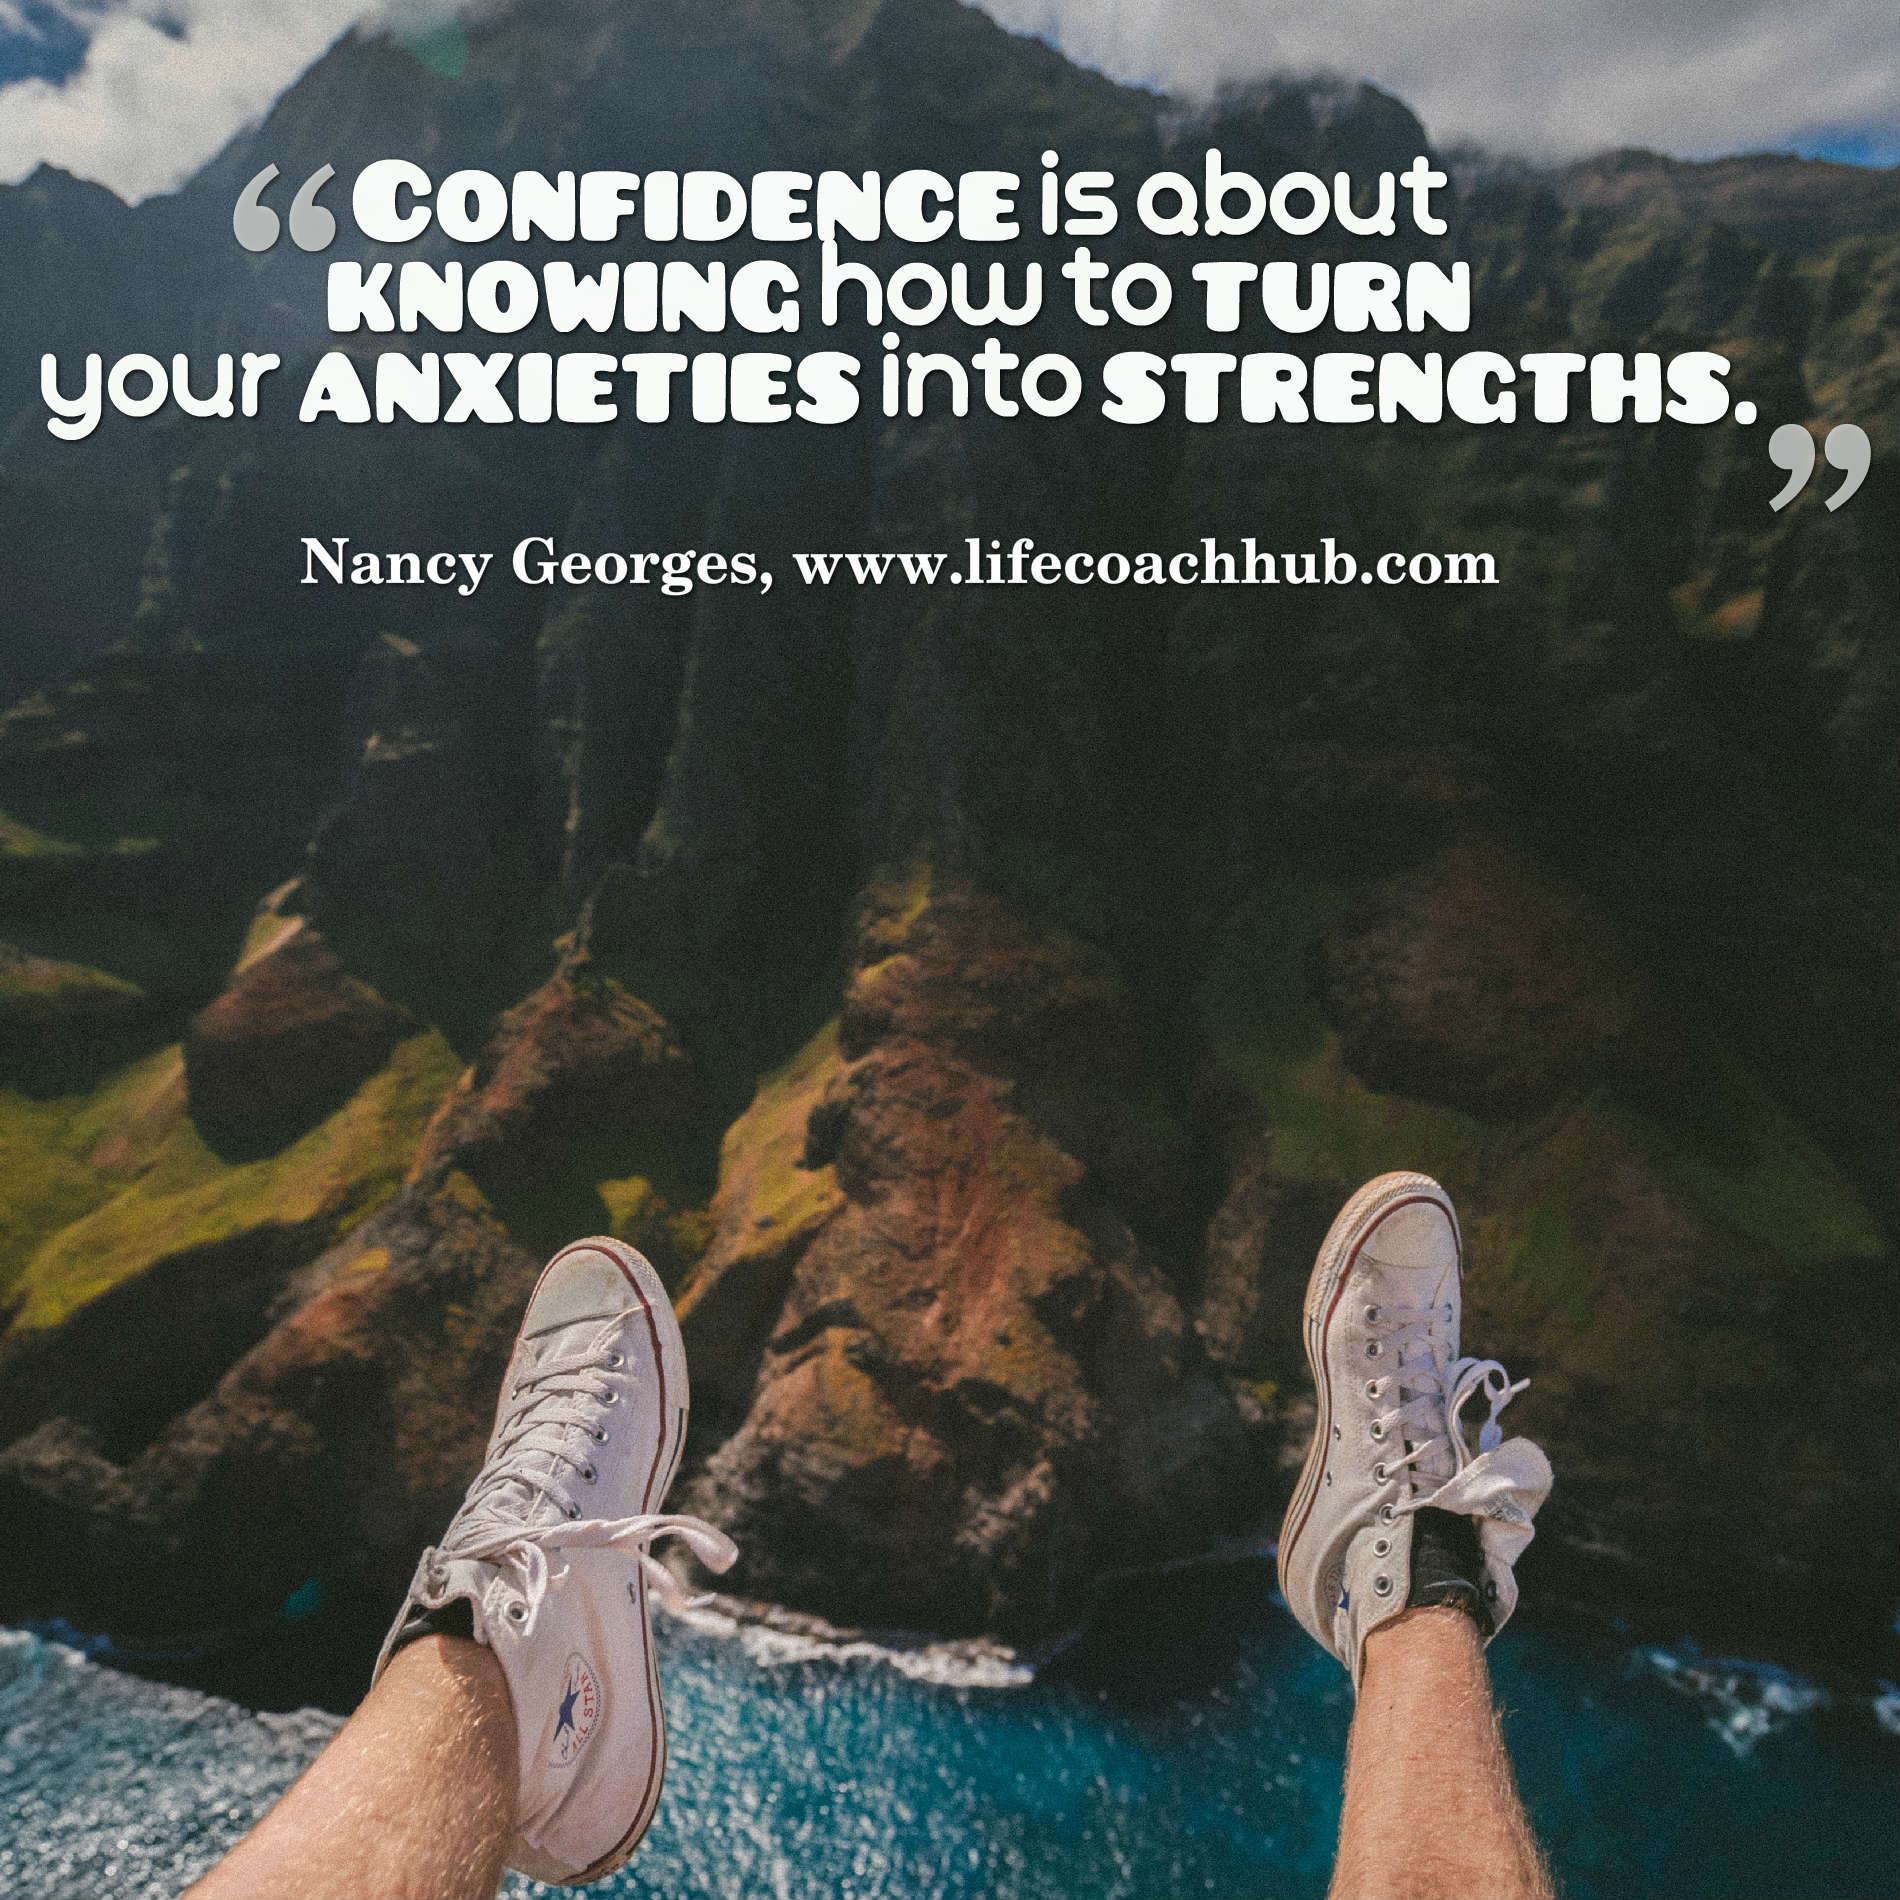 How to turn your anxieties into strengths